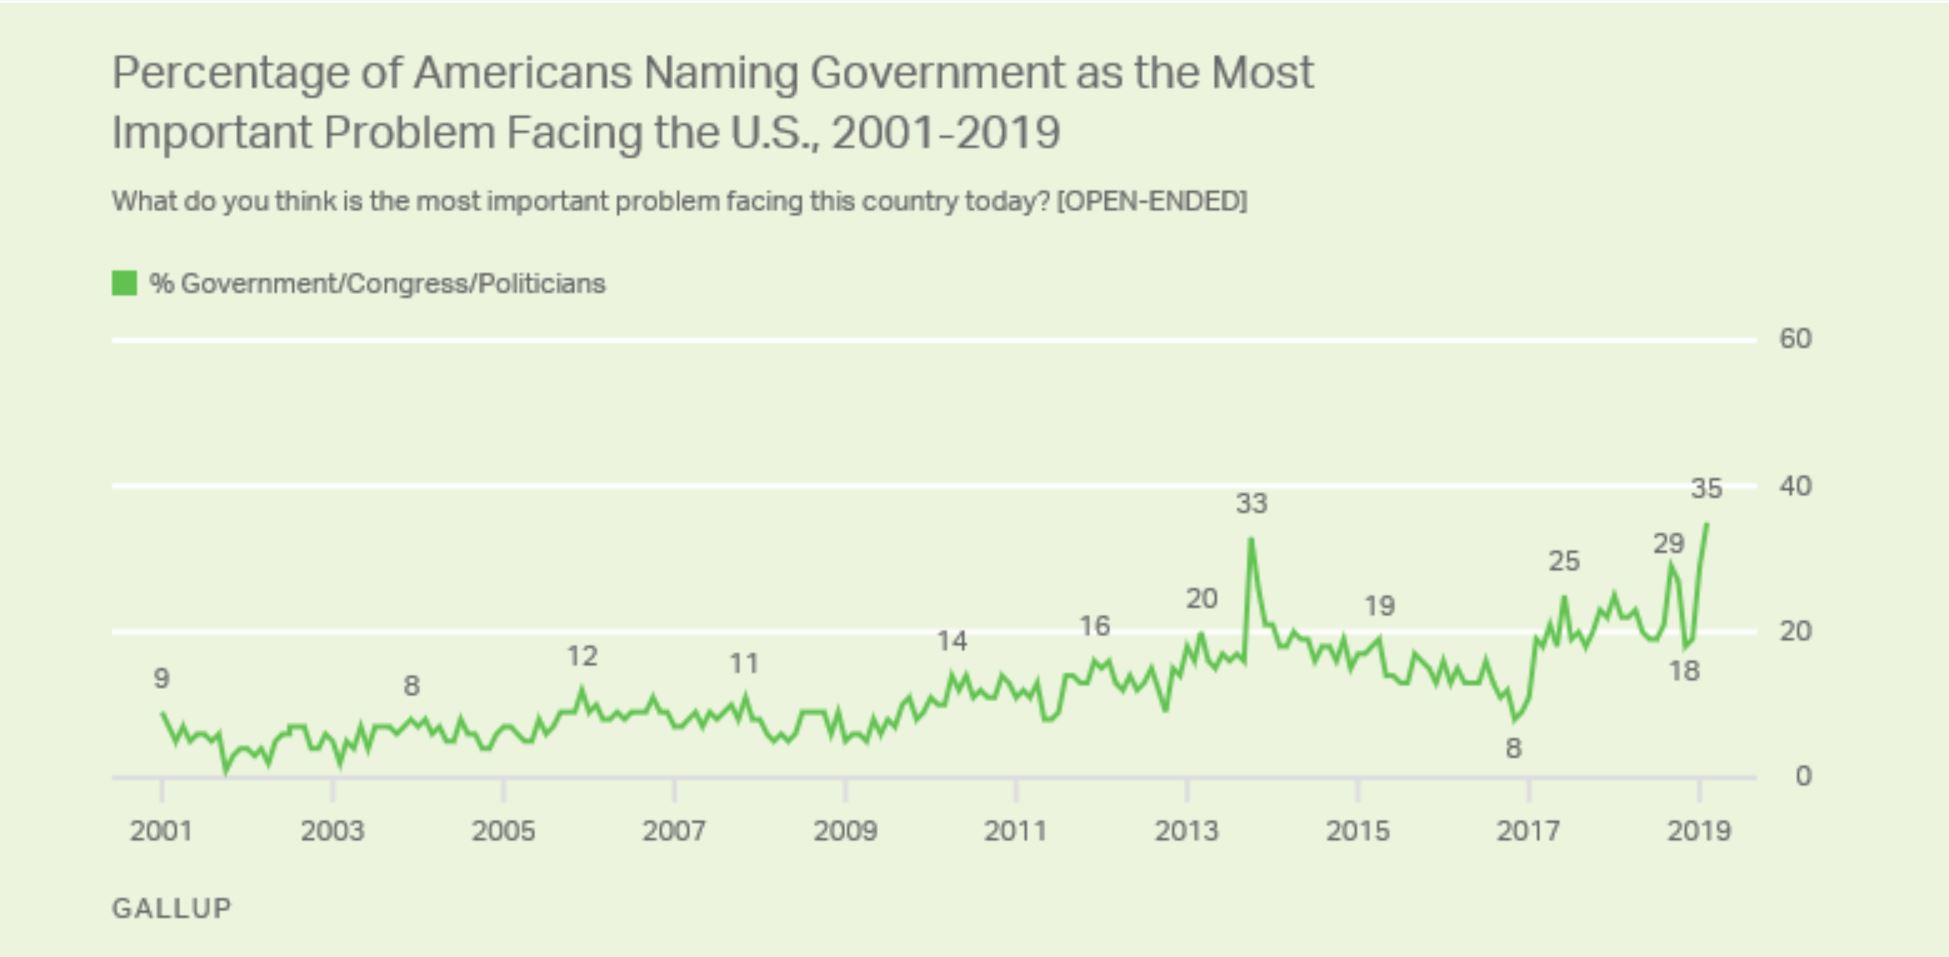 US GOVERNMENT TRUST GALLUP